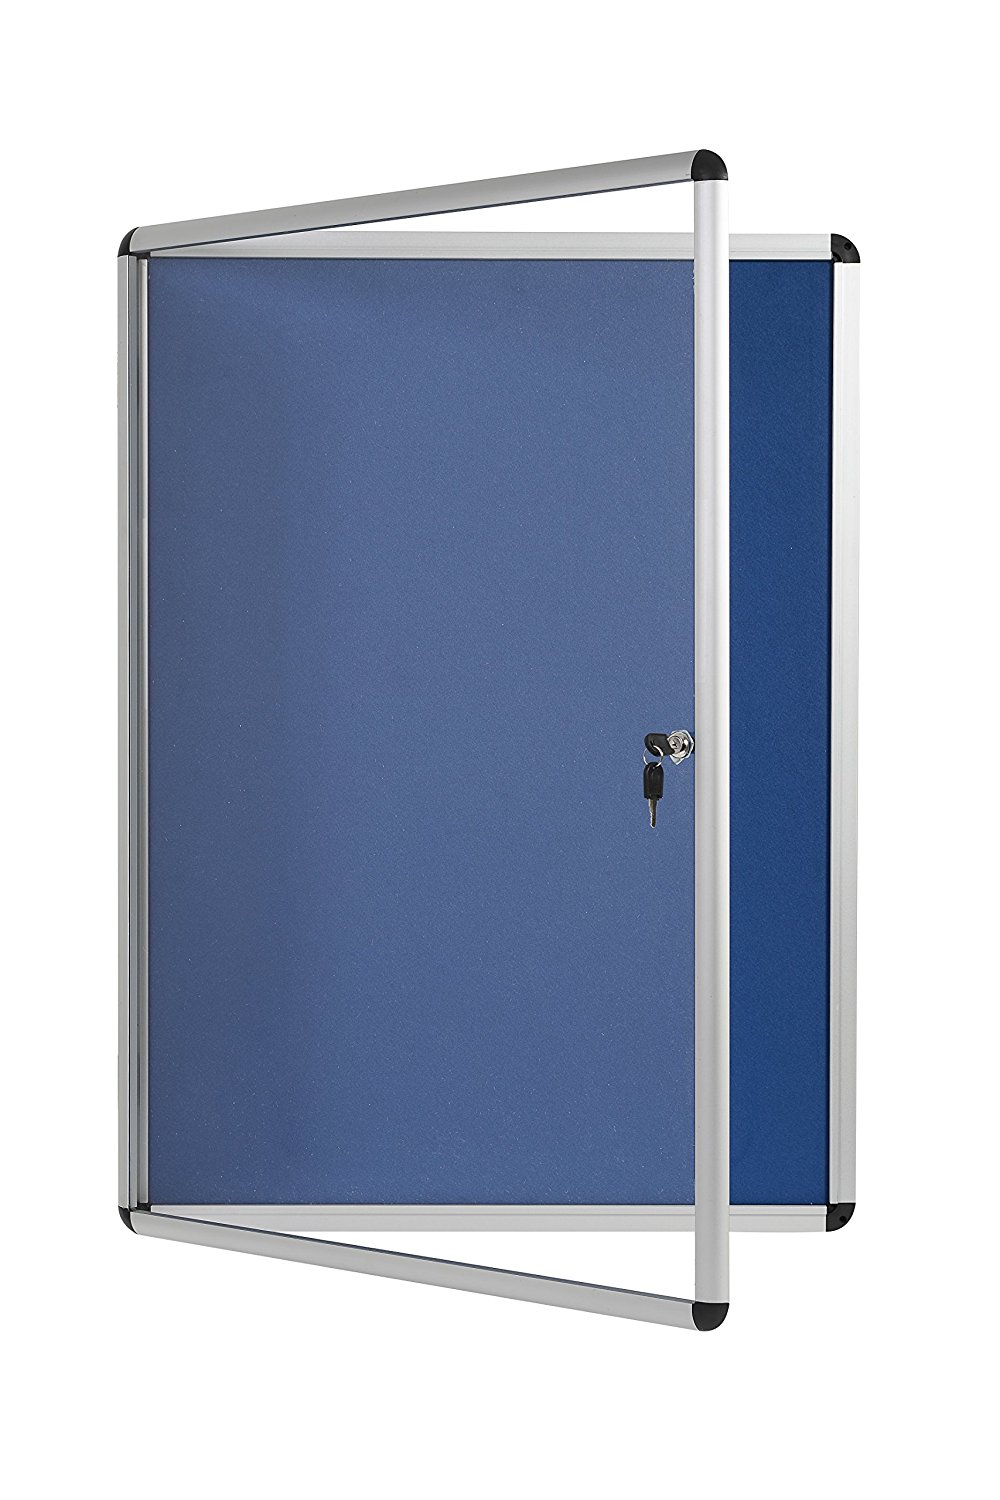 Foamboard Bi-Office Enclore Blue Felt Lockable Noticeboard 9xA4